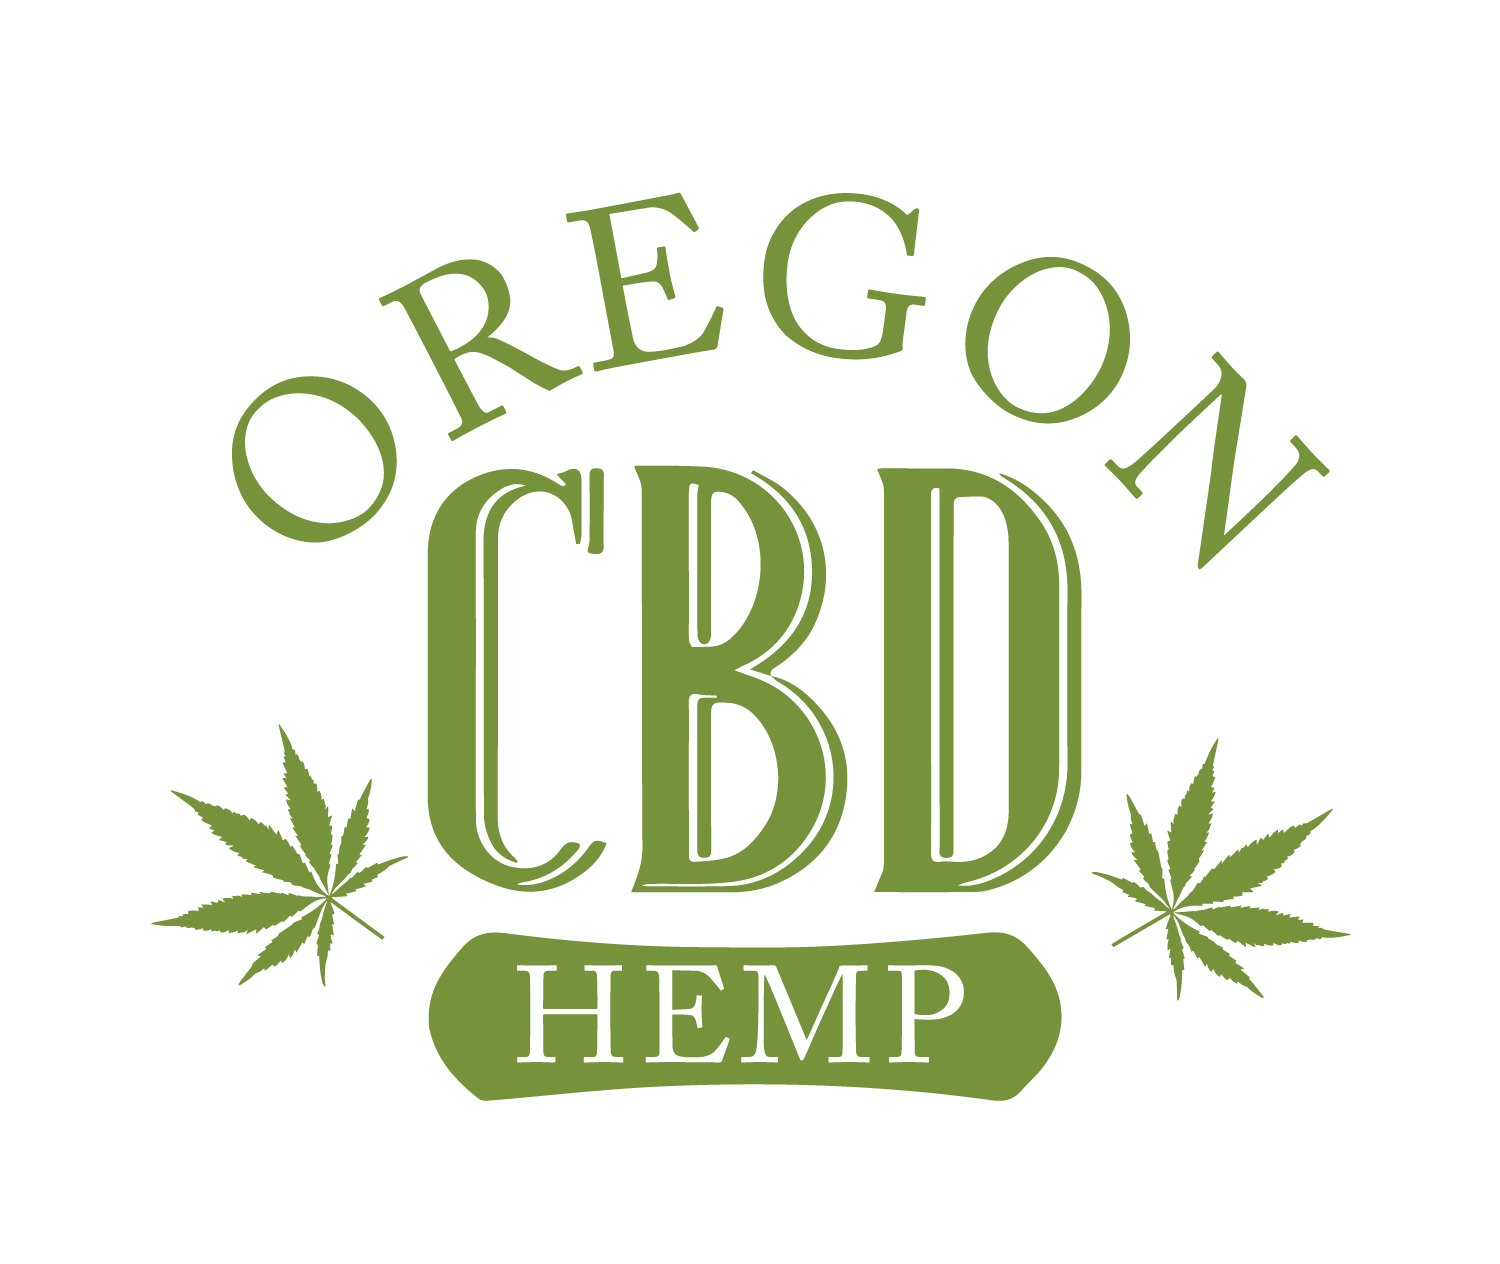 Oregon CBD Hemp | High quality hemp grown in Southern Oregon